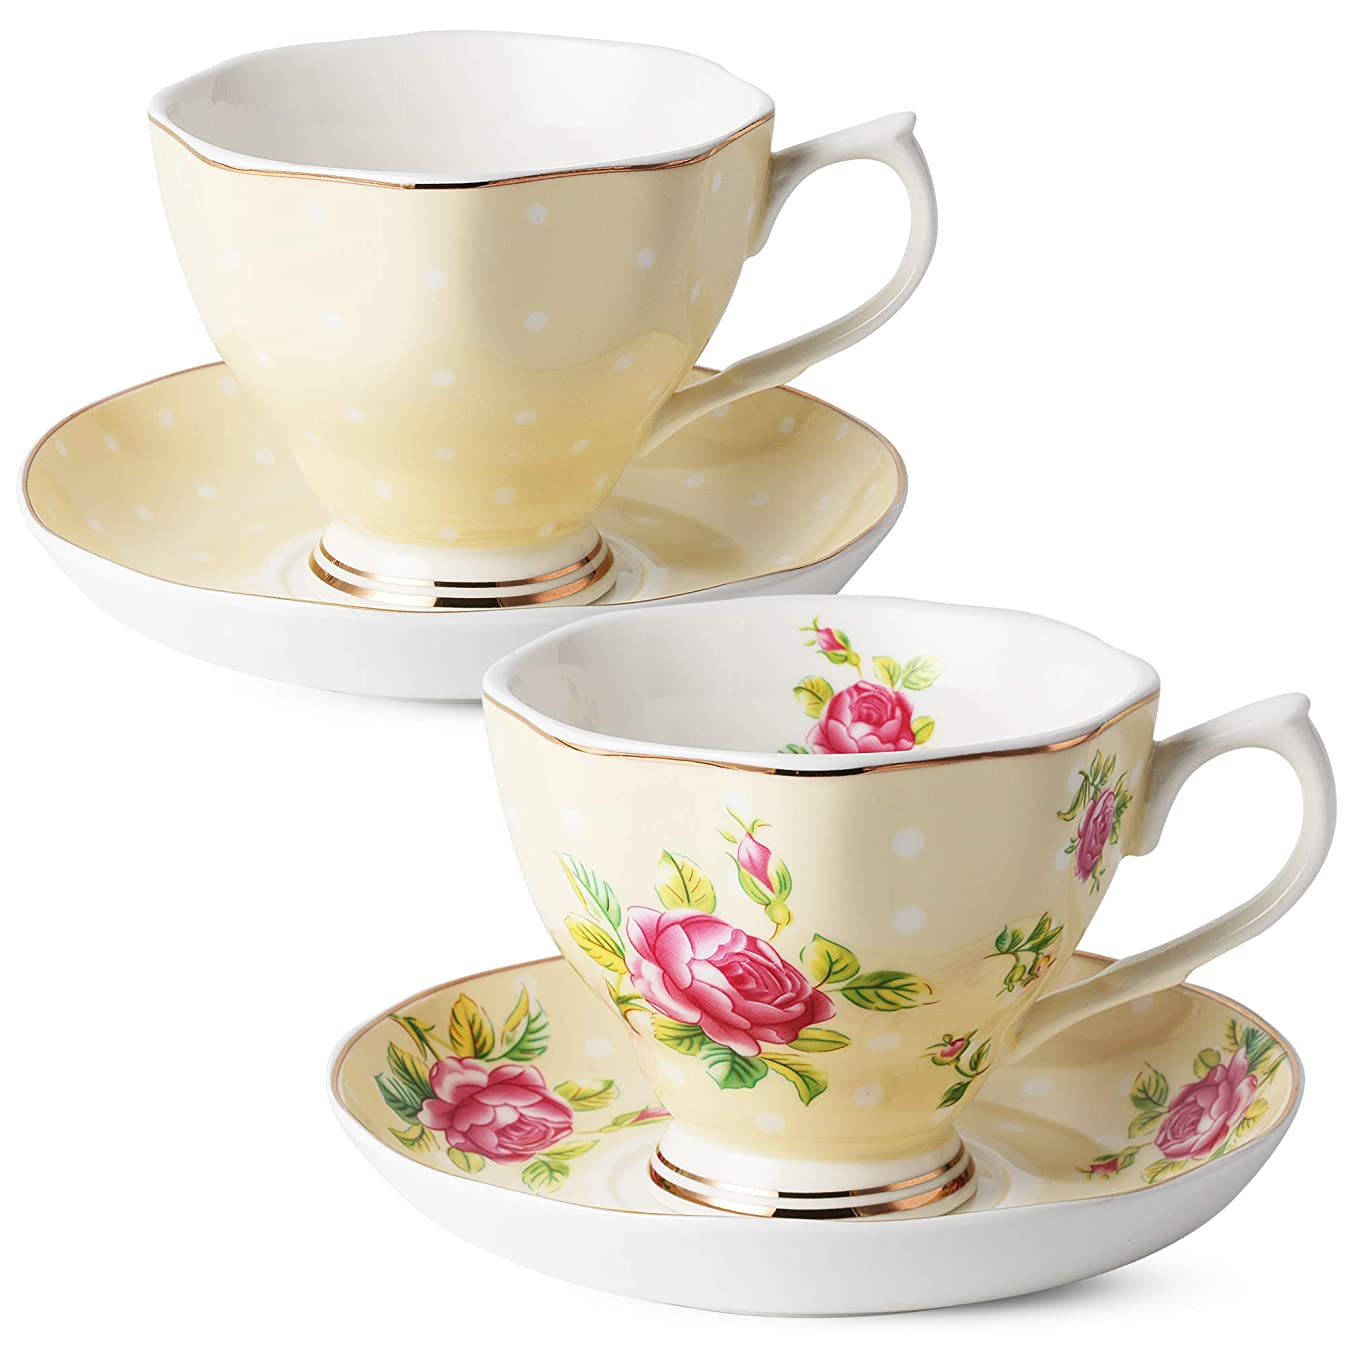 BT?T- Floral Tea Cups and Saucers, Set of 2 (Yellow - 8 oz) with Gold Trim and Gift Box, Coffee Cups, Floral Tea Cup Set, British Tea Cups, Porcelain Tea Set, Tea Sets for Women, Latte Cups